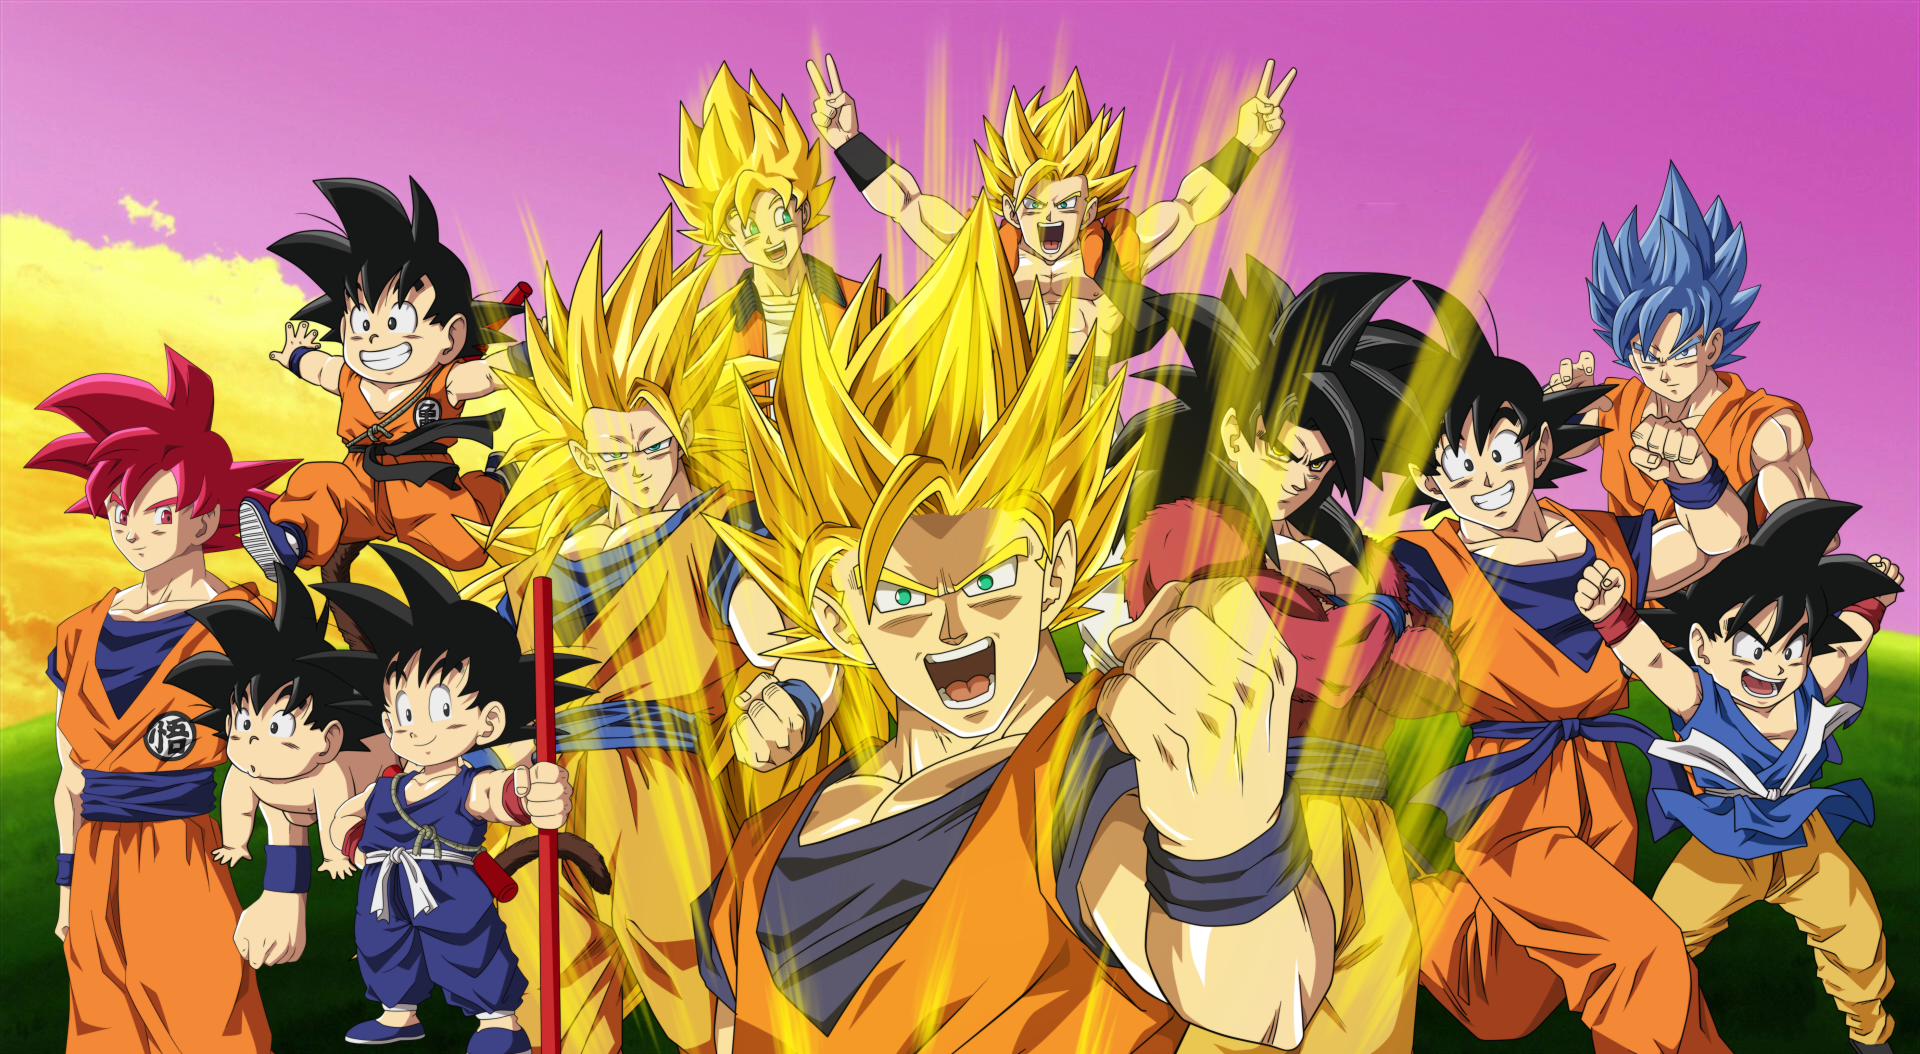 164 4K Ultra HD Dragon Ball Z Wallpapers